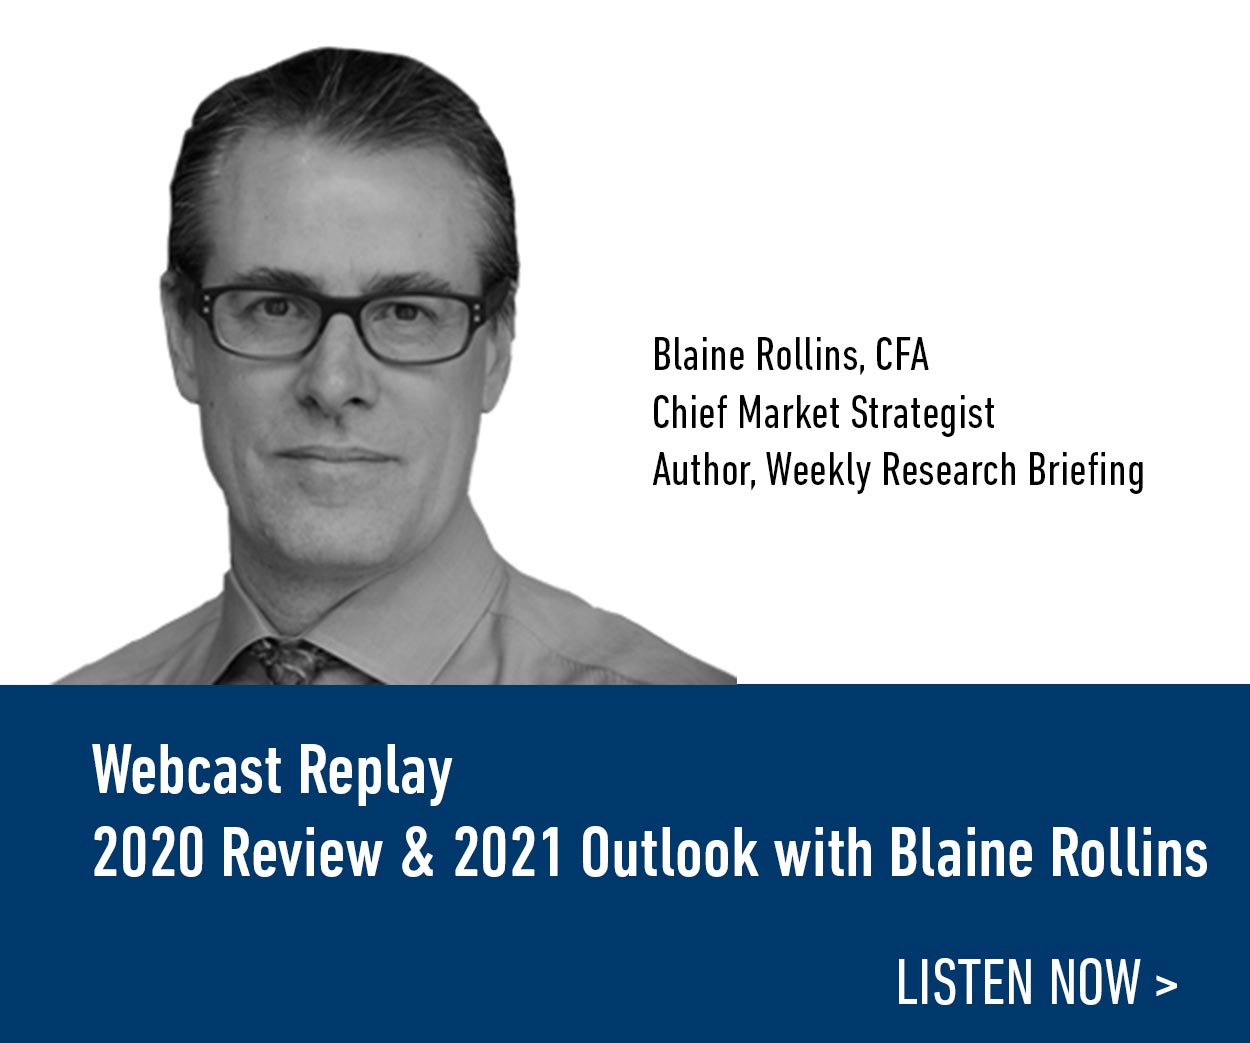 Webcast Replay: 2020 Review & 2021 Outlook with Blaine Rollins